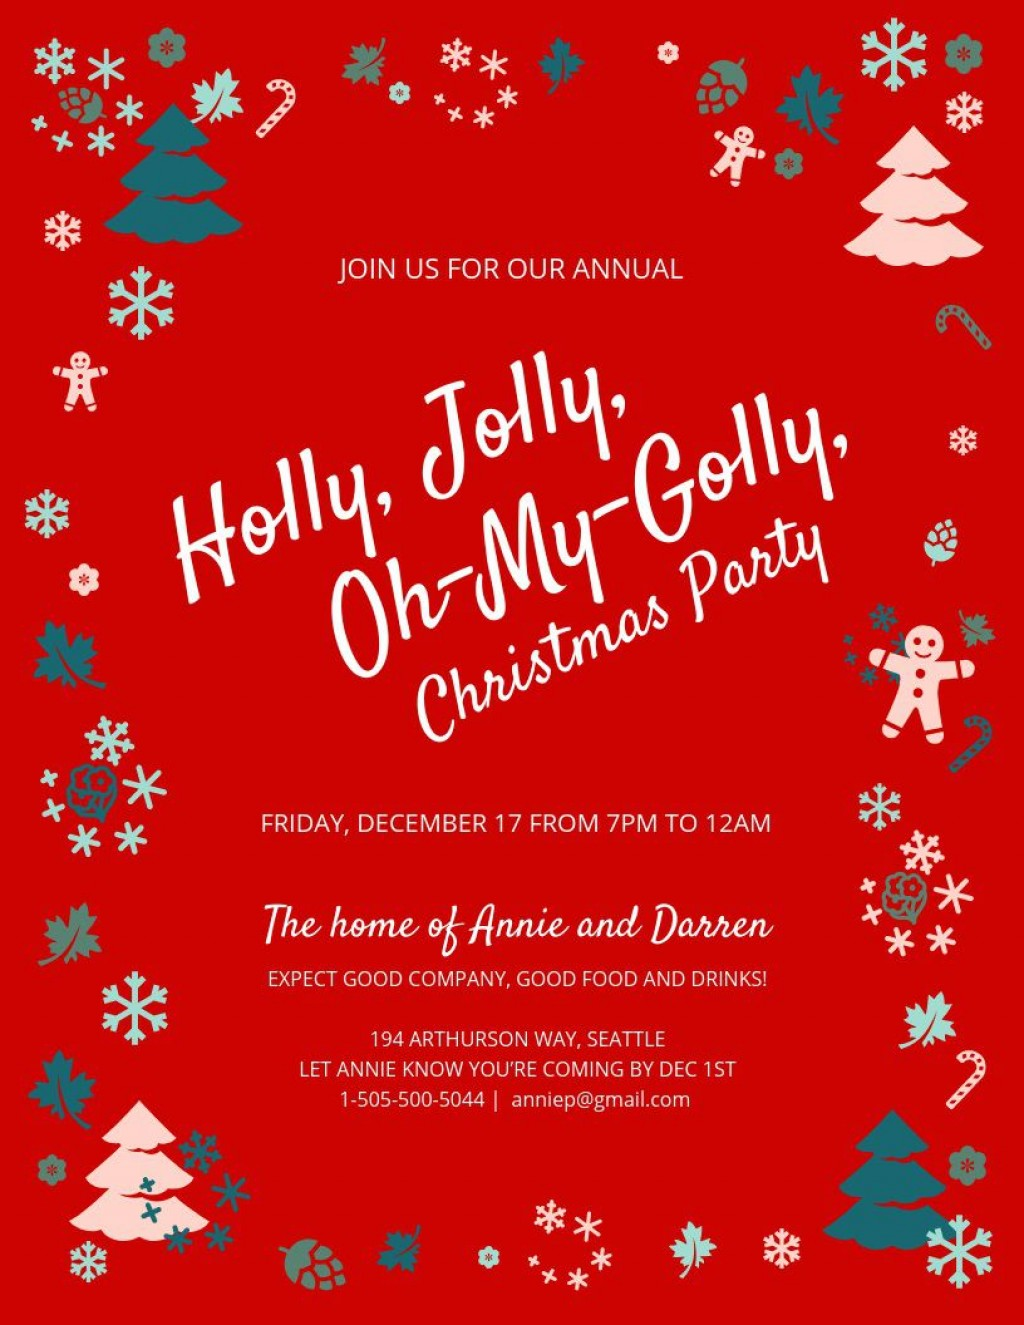 003 Awesome Christma Party Invitation Template Highest Clarity  Funny Free Download Word CardLarge